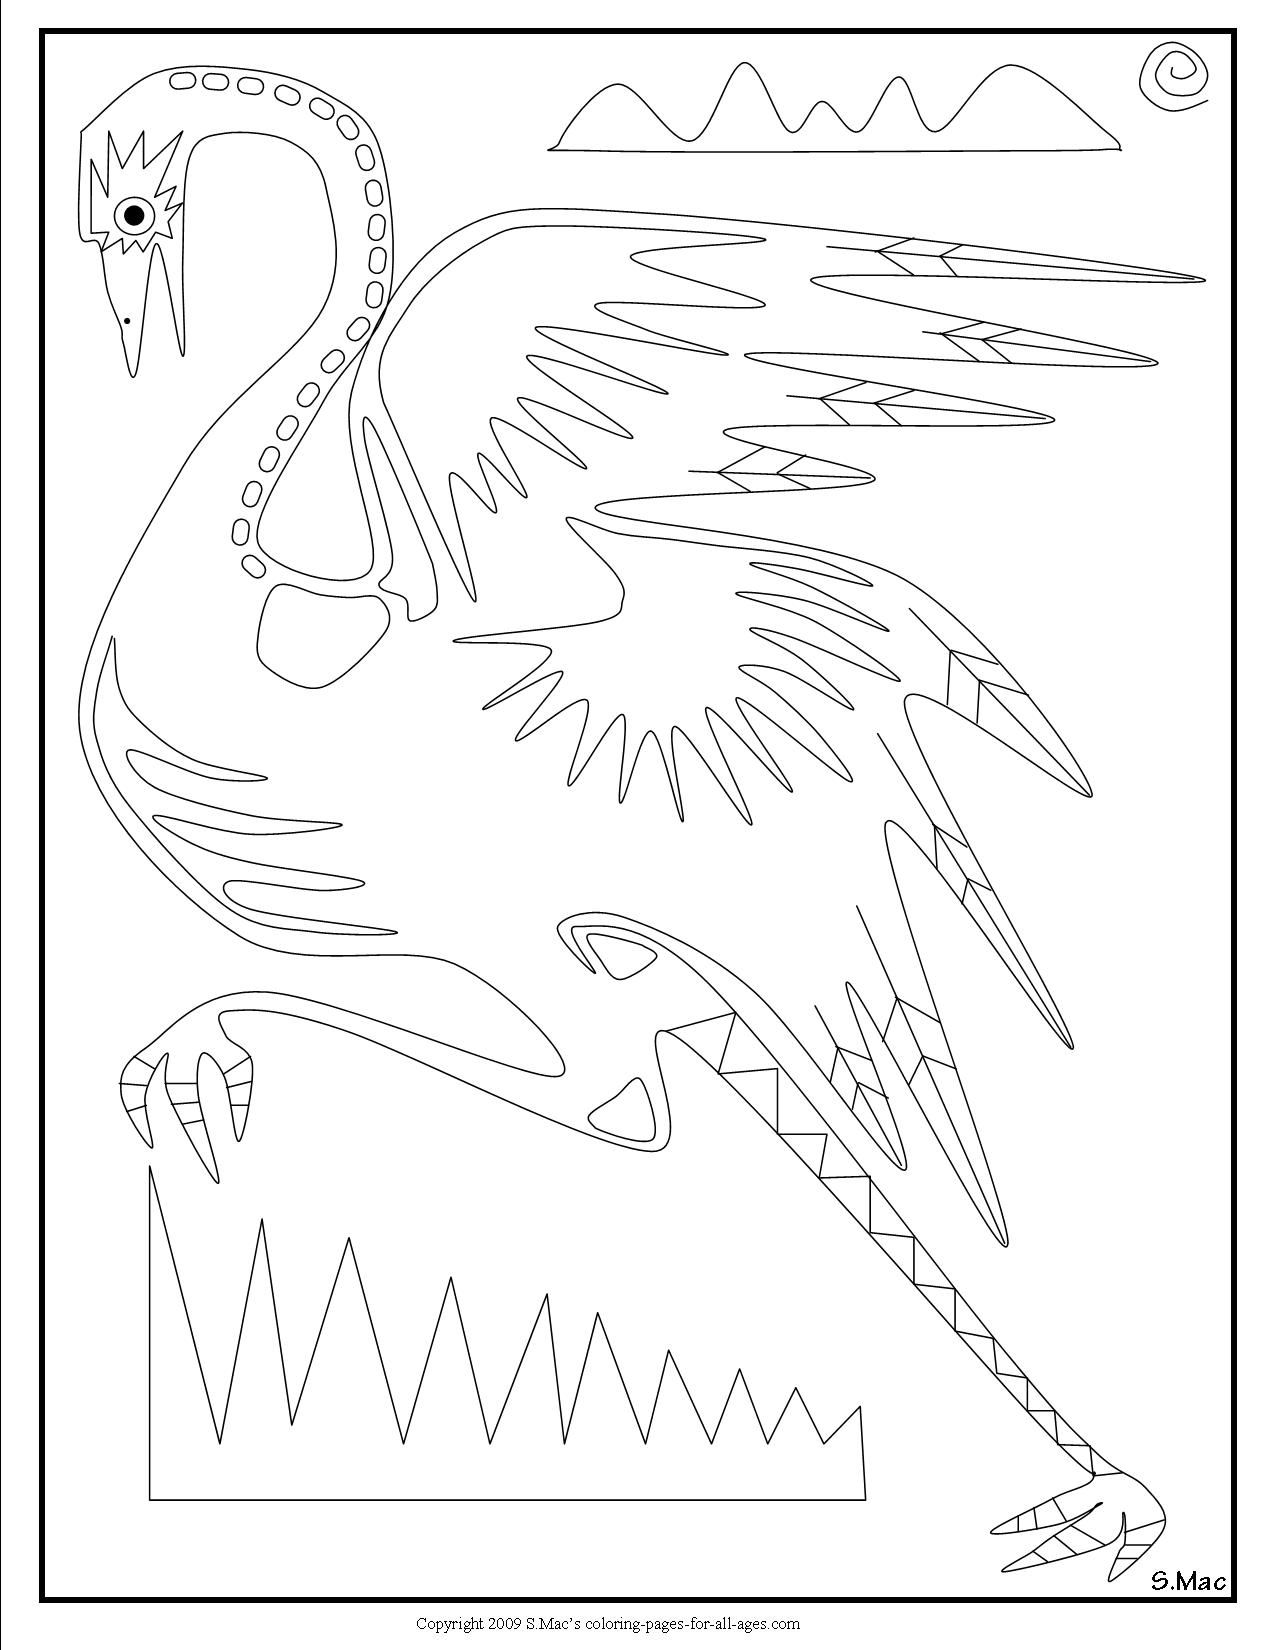 X Ray Art Coloring Pages Xray Art Coloring Pages Tribal Drawings